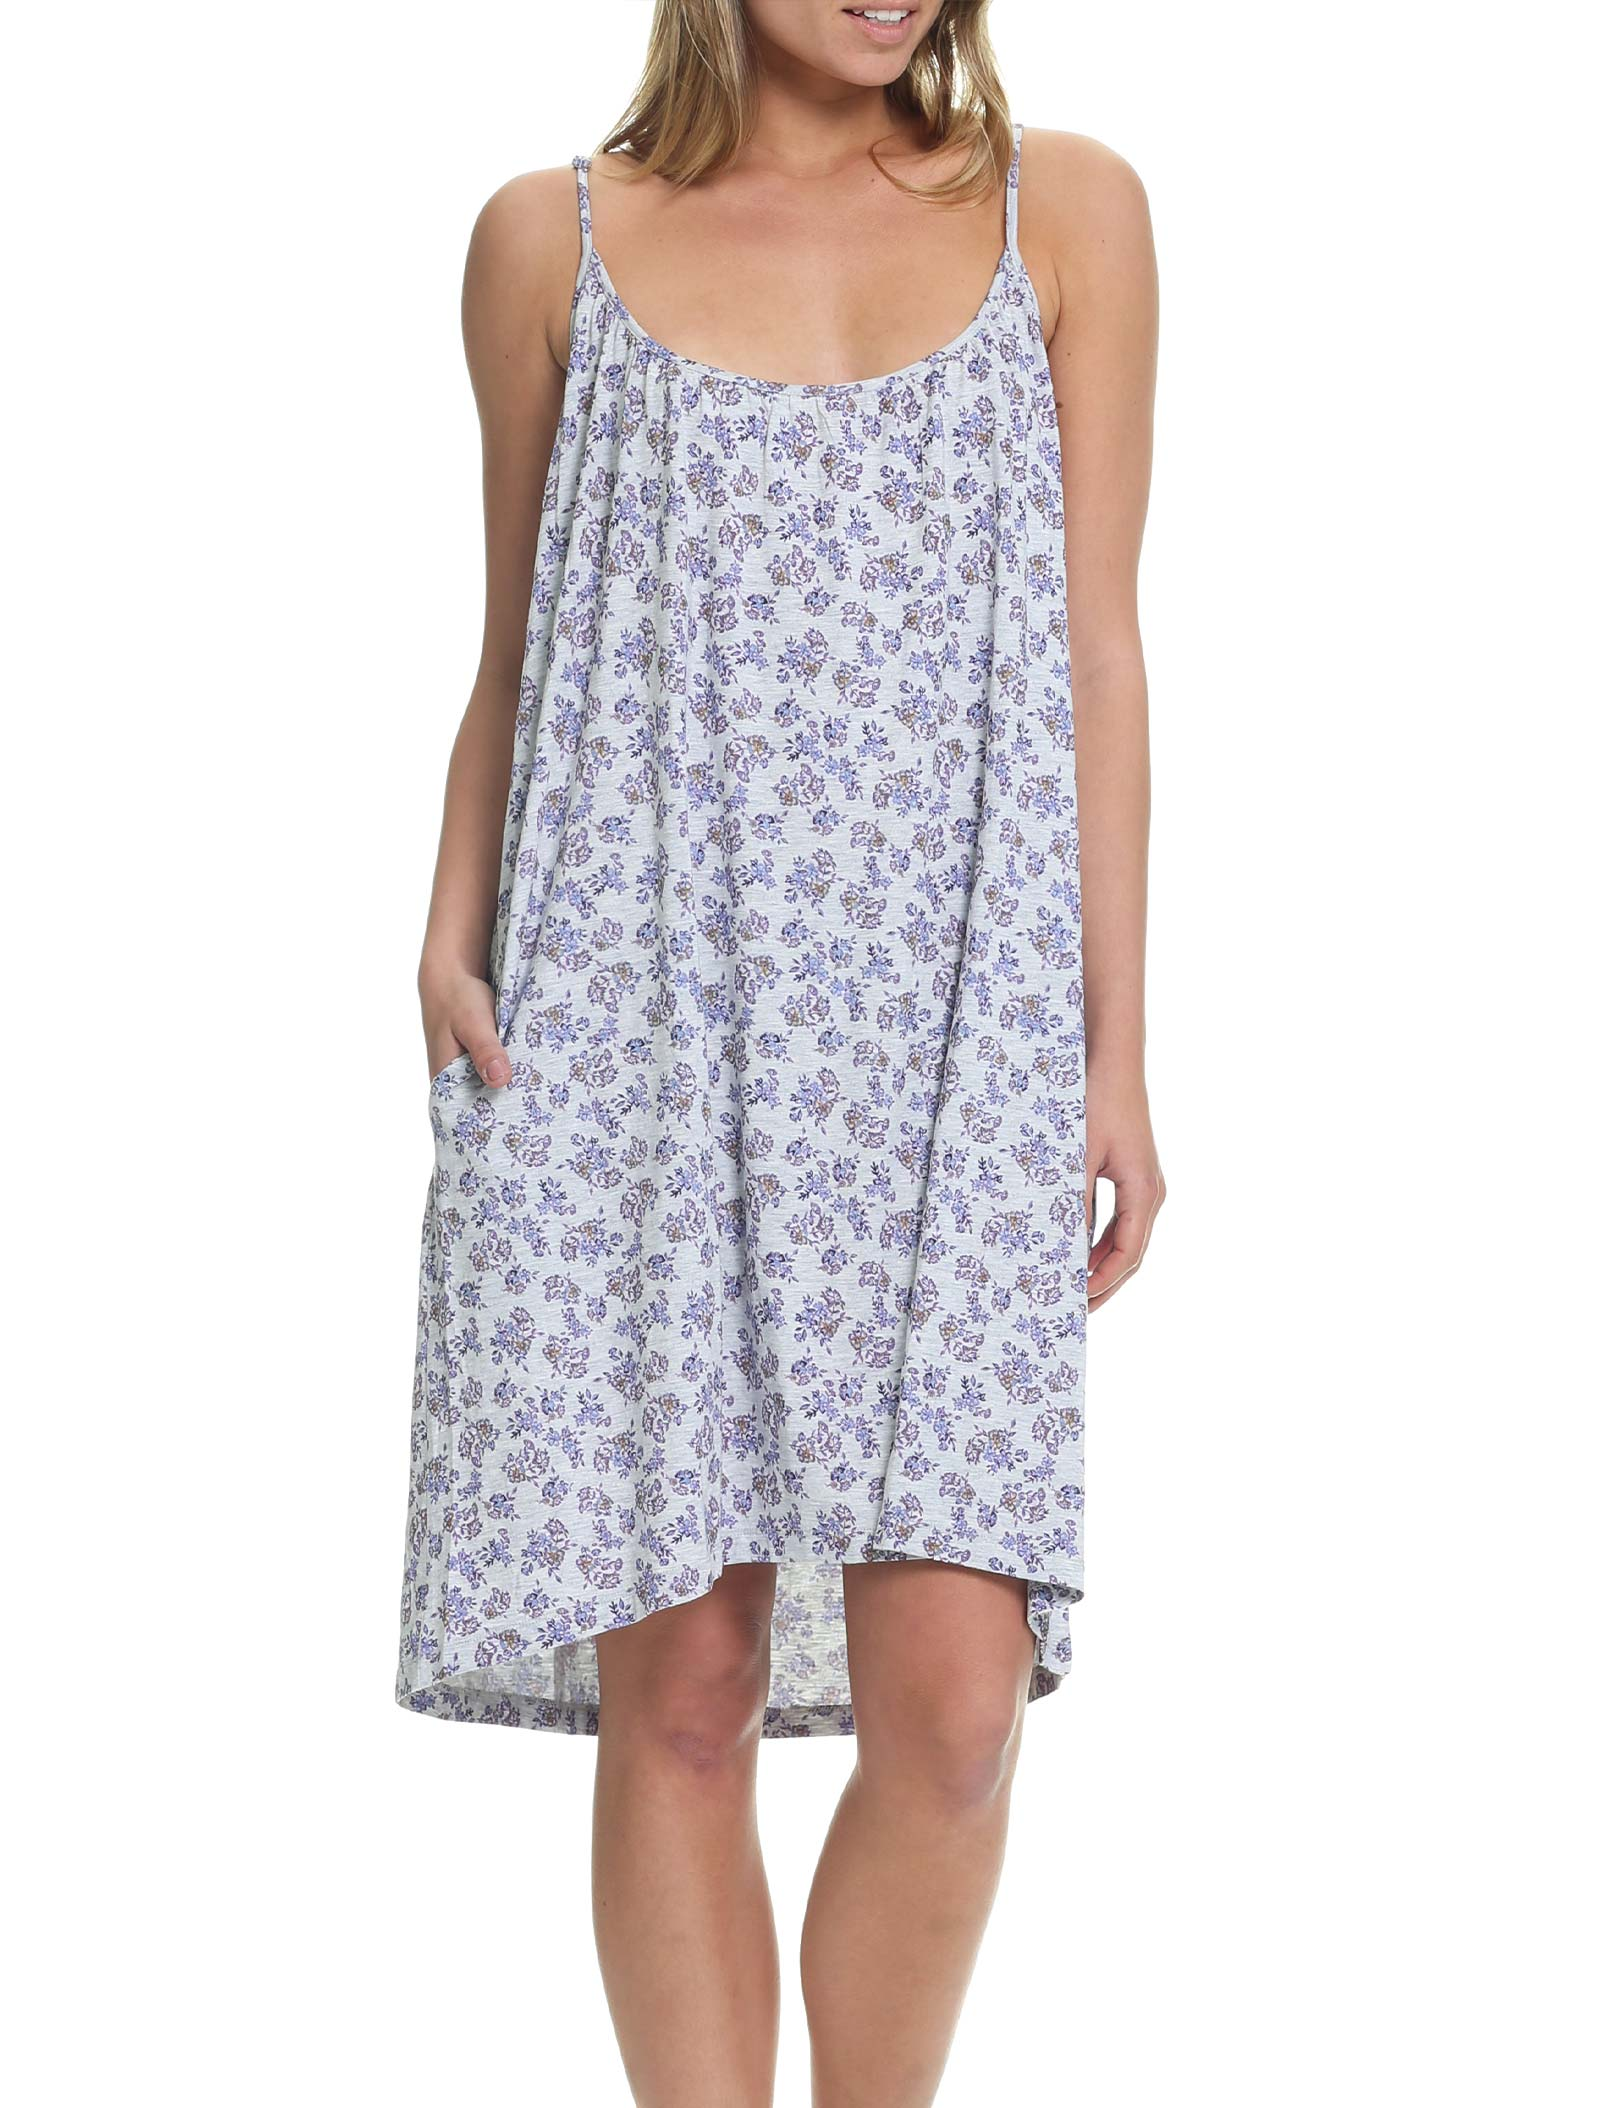 Potager Modal Strappy Nightgown